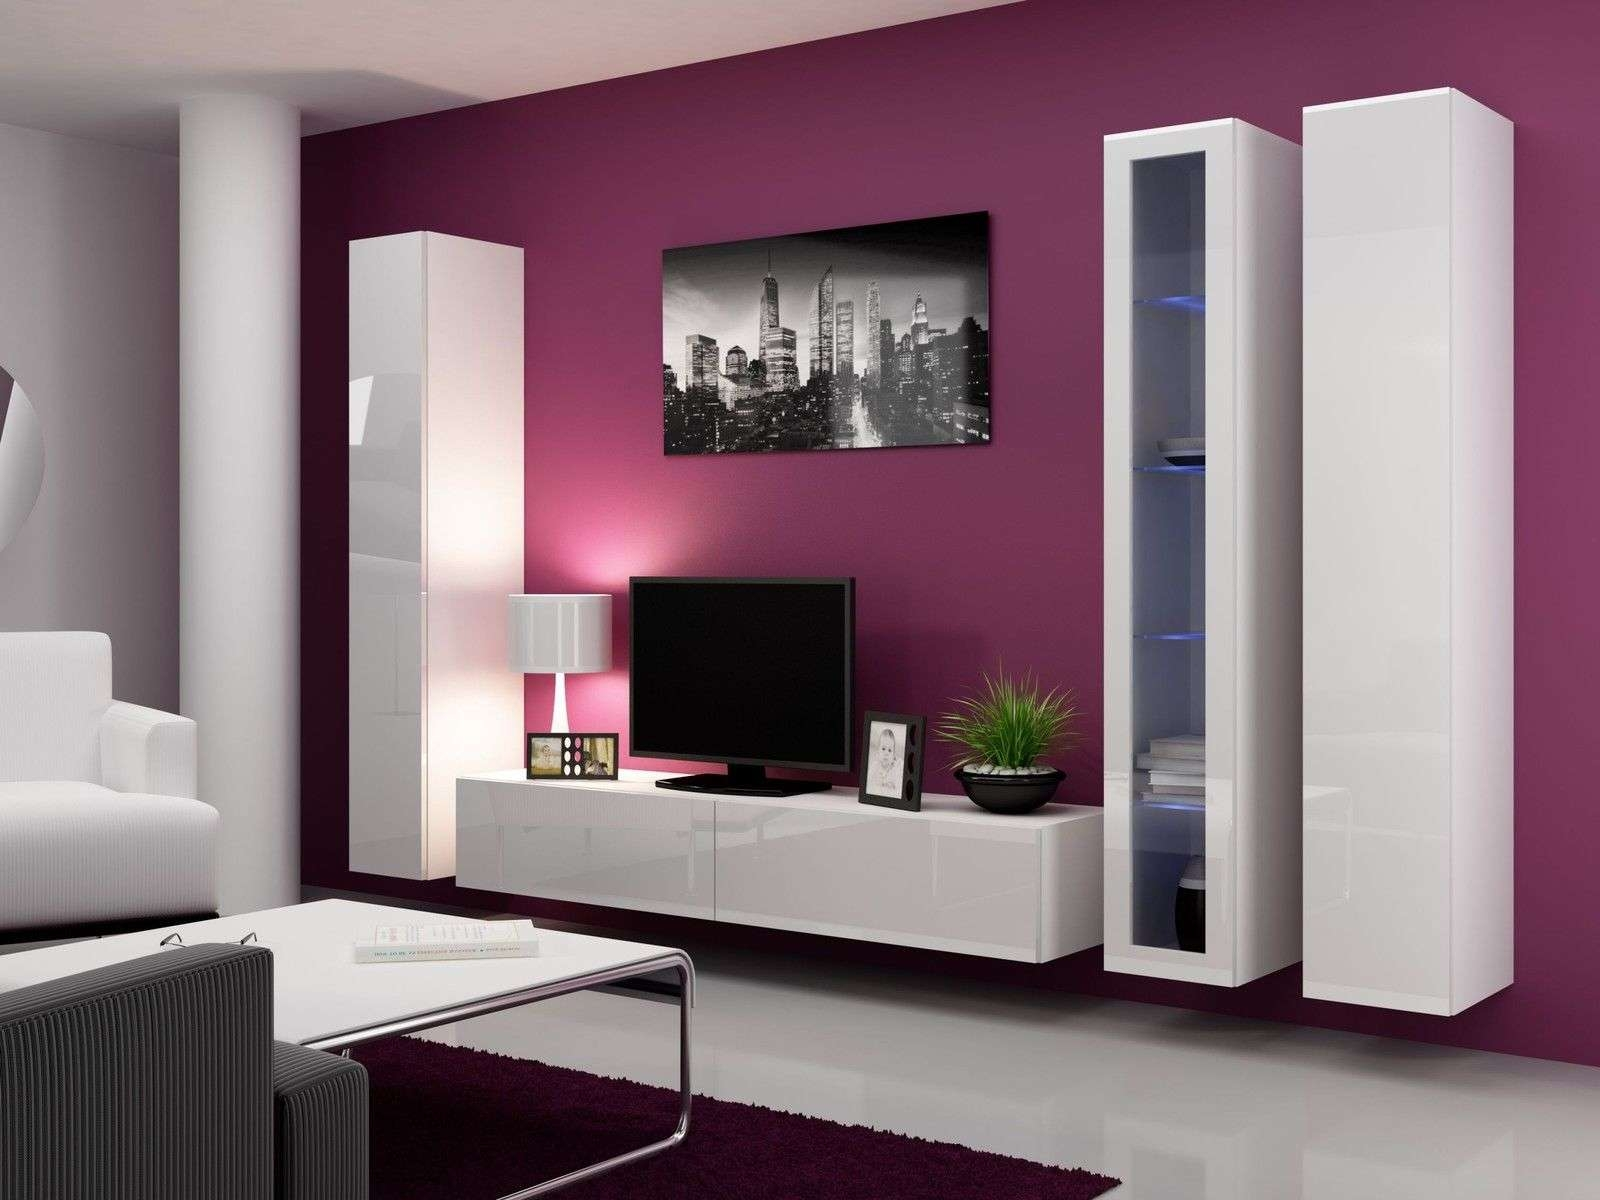 Floating Tv Stand For Small Space, Perfect! – Home Decorreisa For Wall Display Units And Tv Cabinets (View 18 of 20)